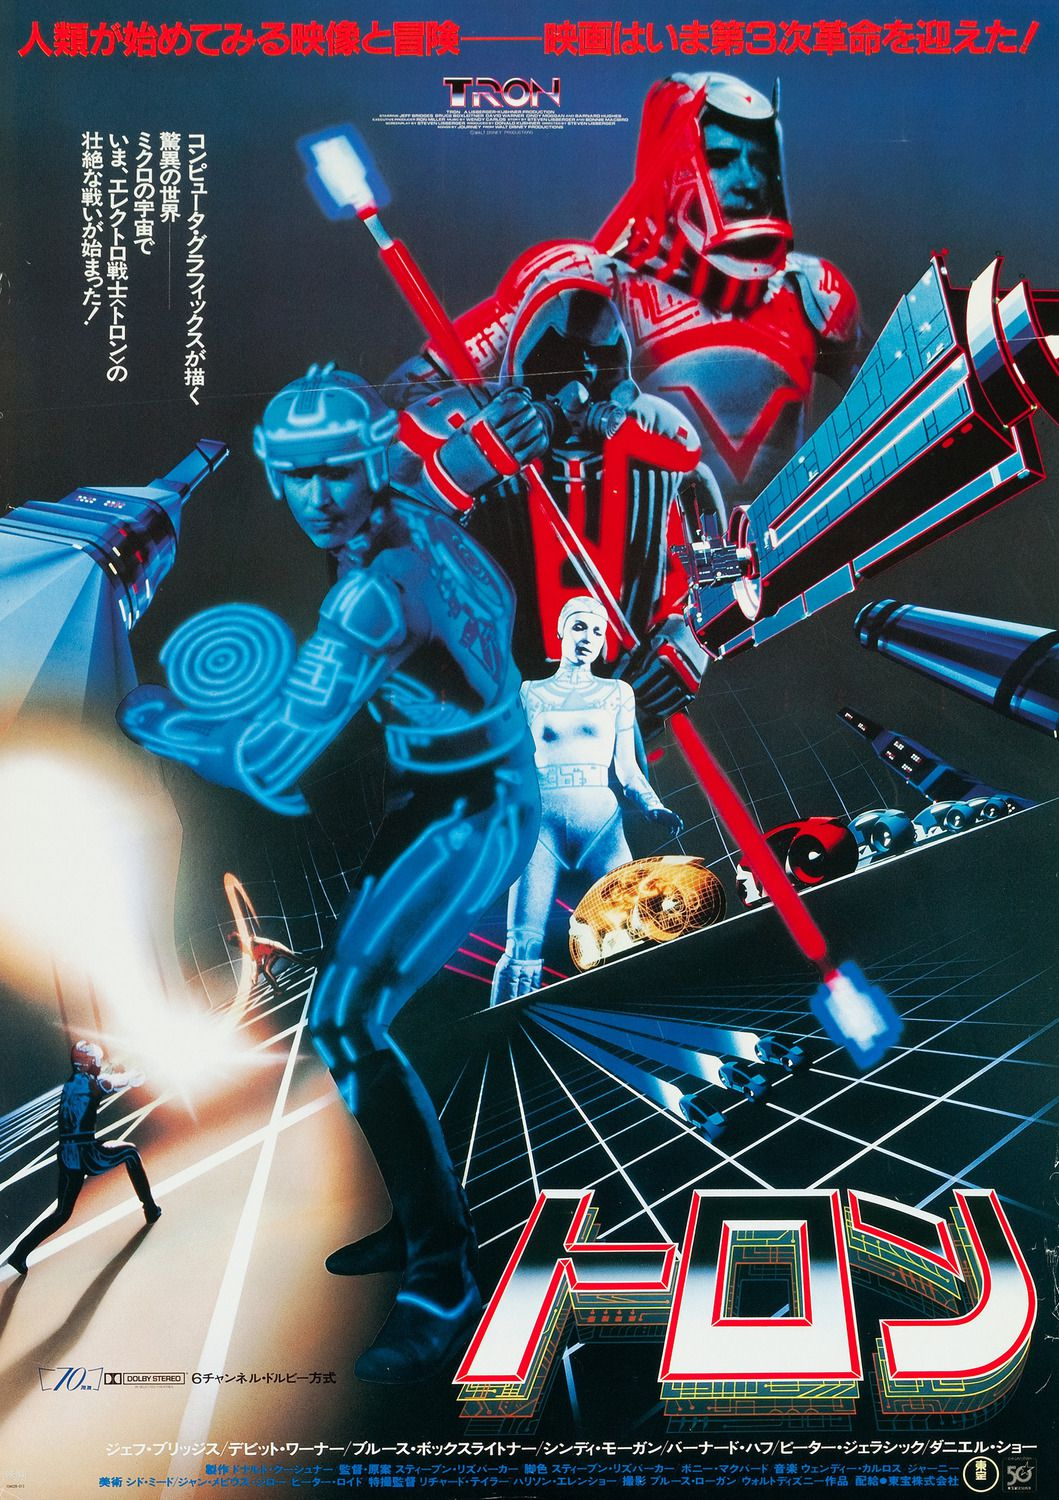 Tron (1982) Jeff Bridges, Bruce Boxleitner, David Warner, Cindy Morgan - classic poster